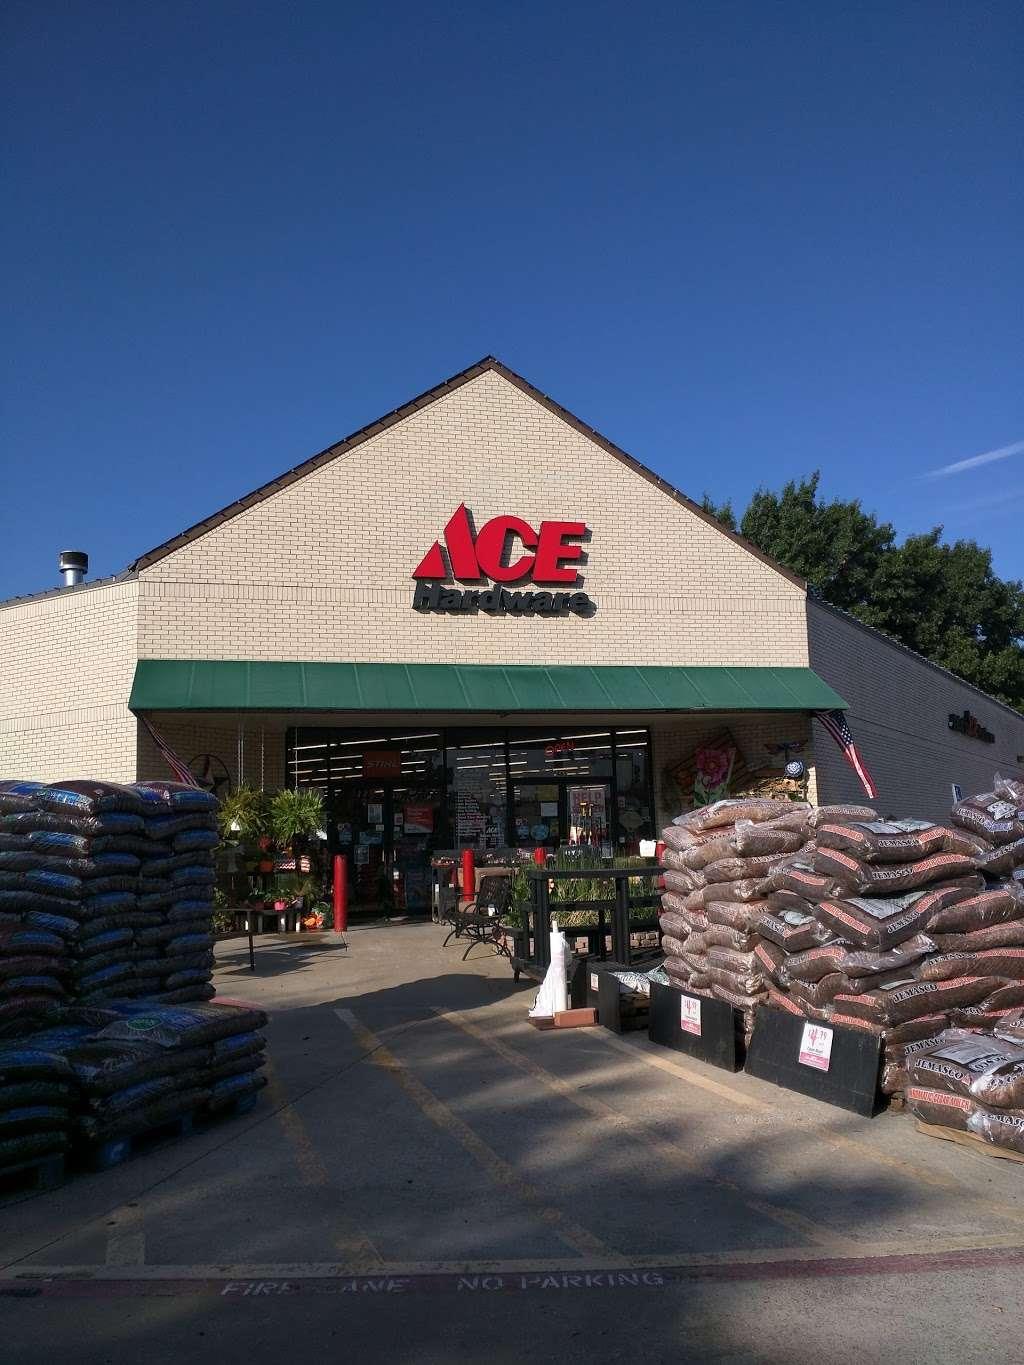 Jabos Ace Hardware Coppell - hardware store  | Photo 1 of 10 | Address: 465 S Denton Tap Rd, Coppell, TX 75019, USA | Phone: (972) 462-8668